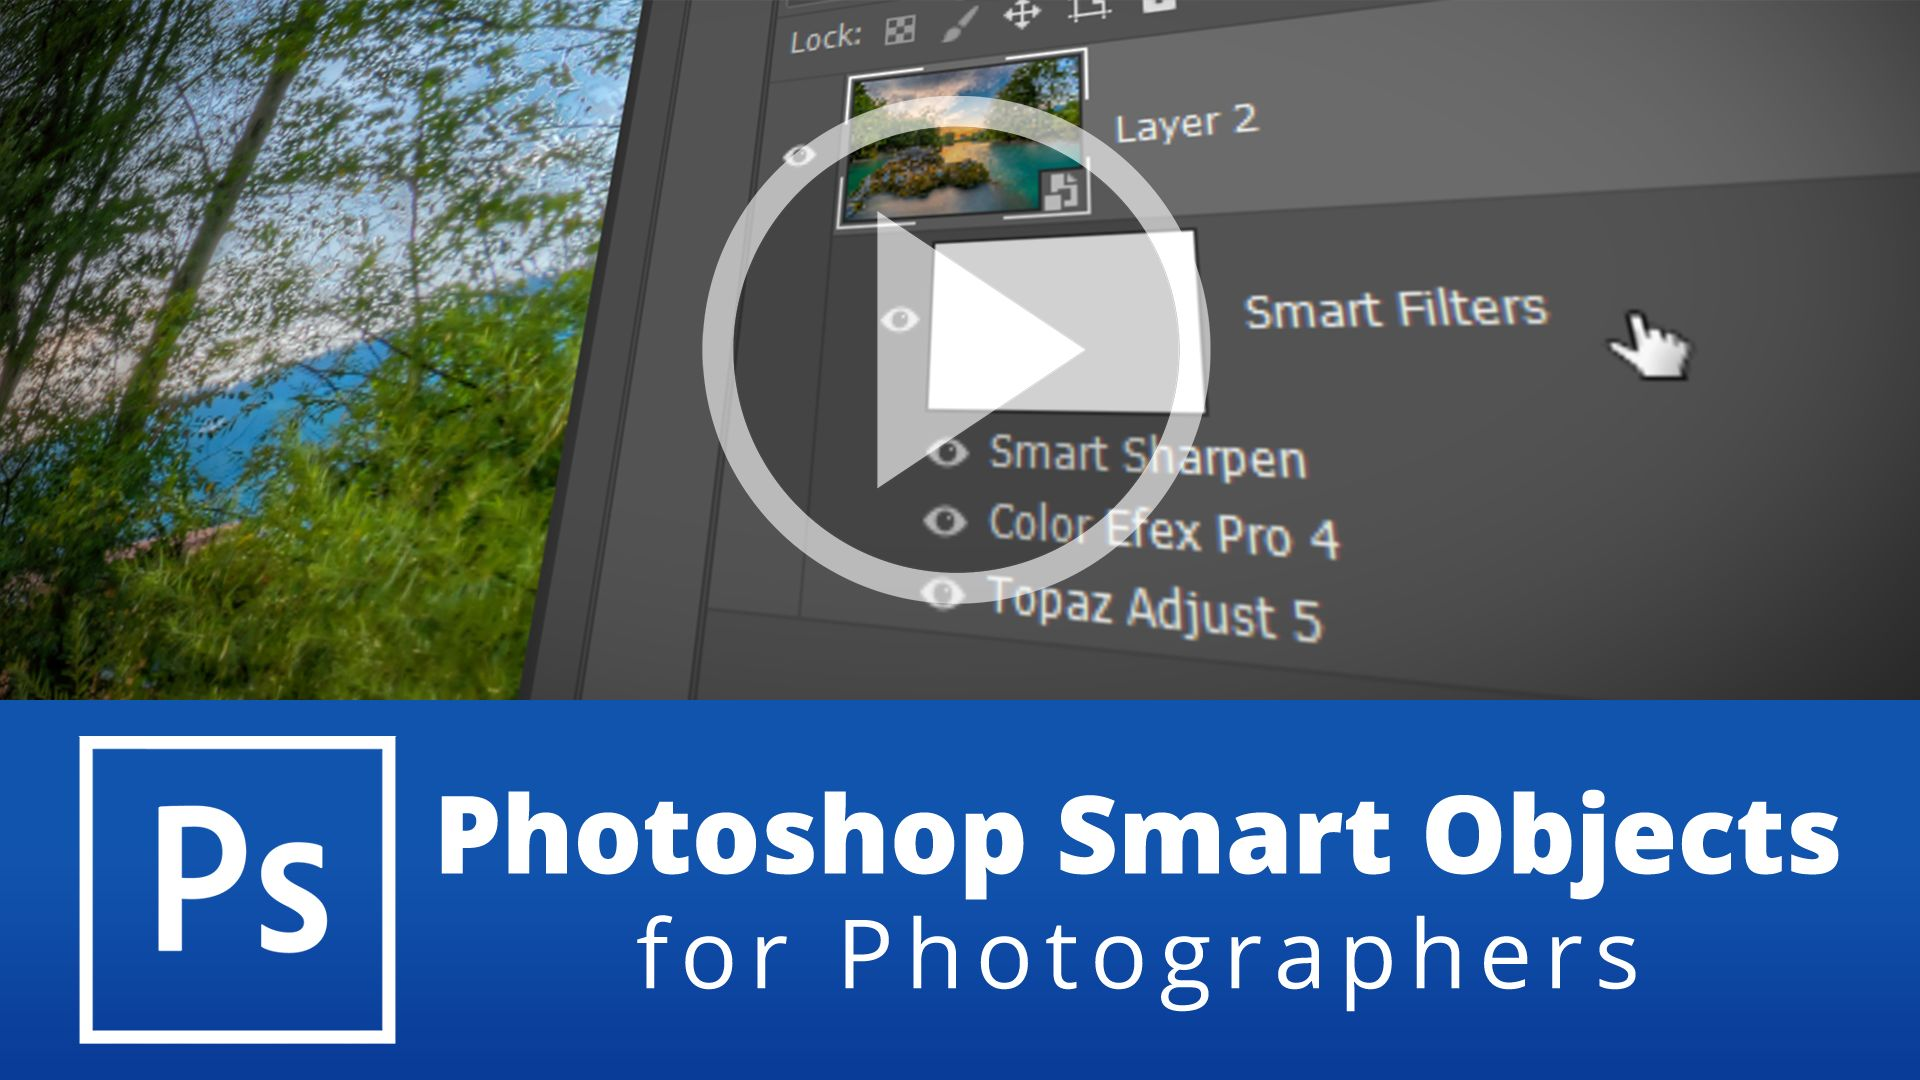 Free photoshop tutorials farbspiel photography photoshop smart objects for photographers baditri Choice Image